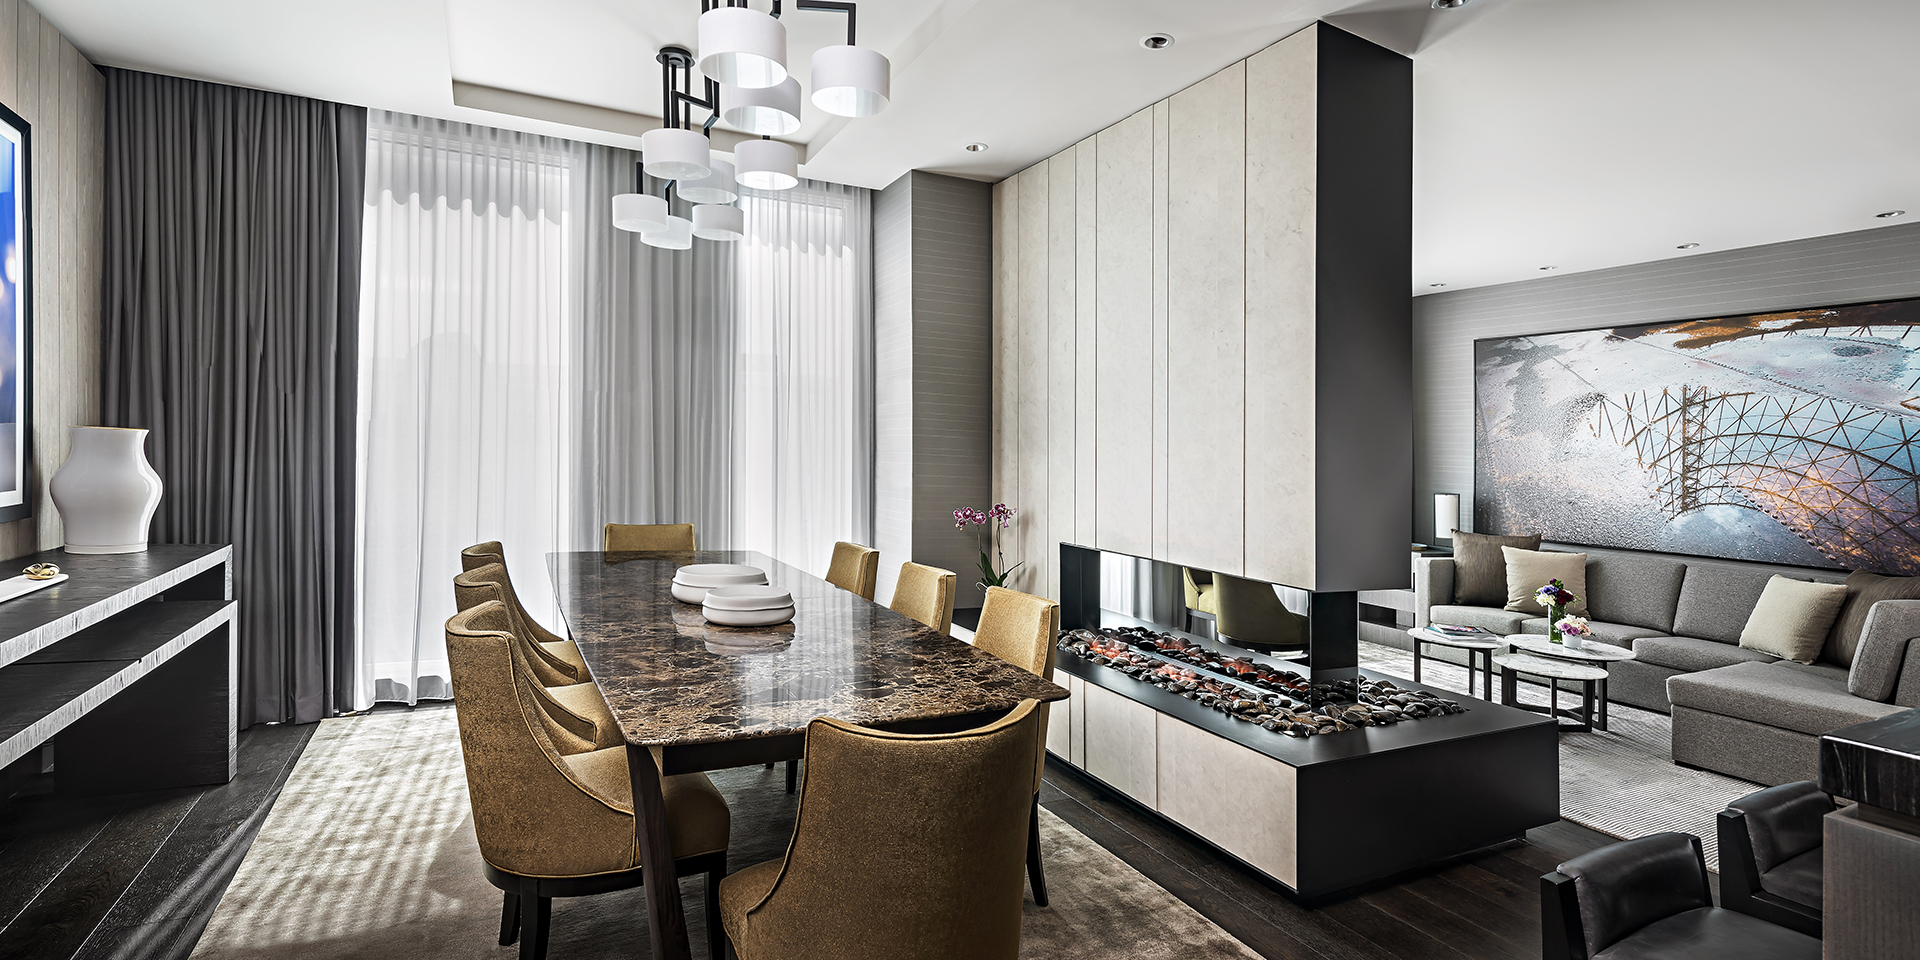 Guests Will Be Inspired At The New Toronto Marriott